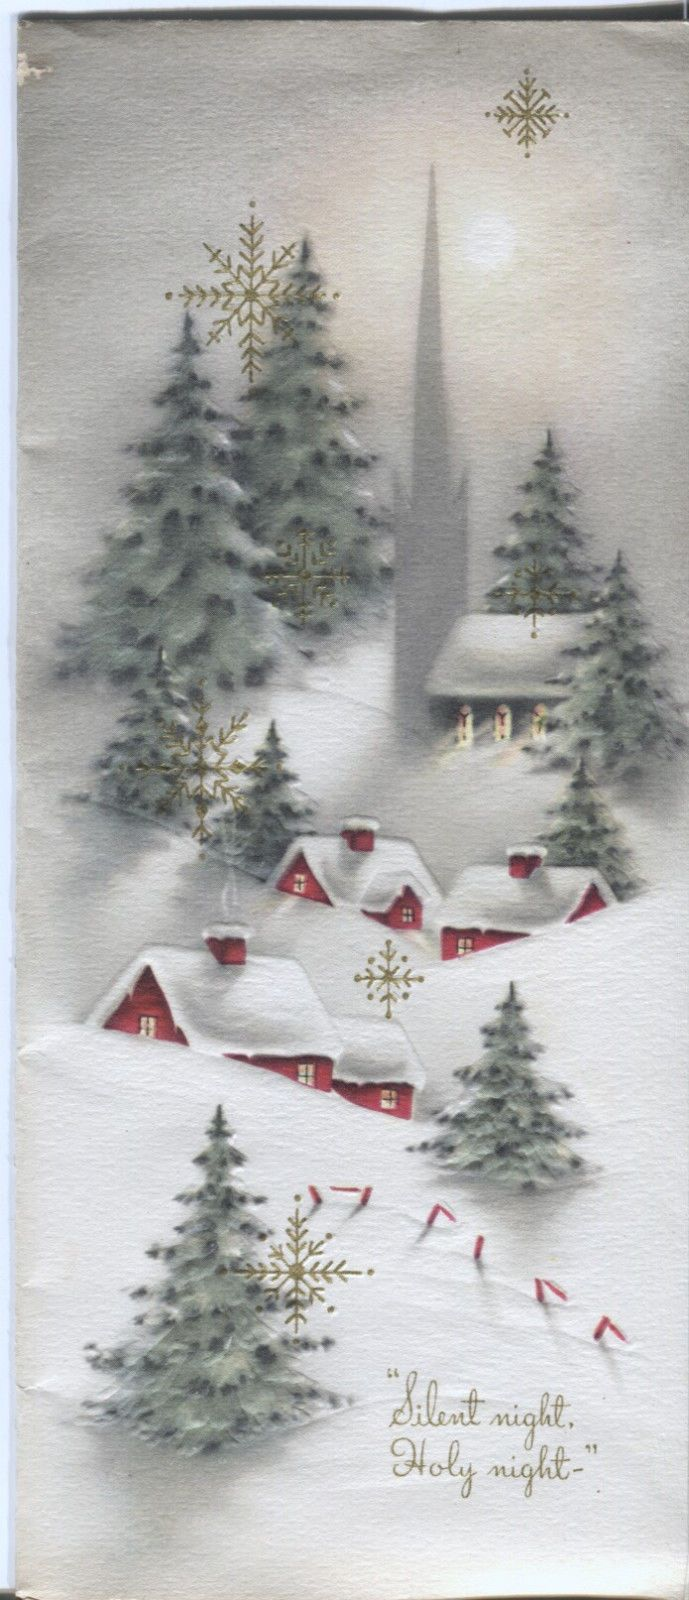 227 best Christmas images on Pinterest | Christmas crafts, Christmas ...